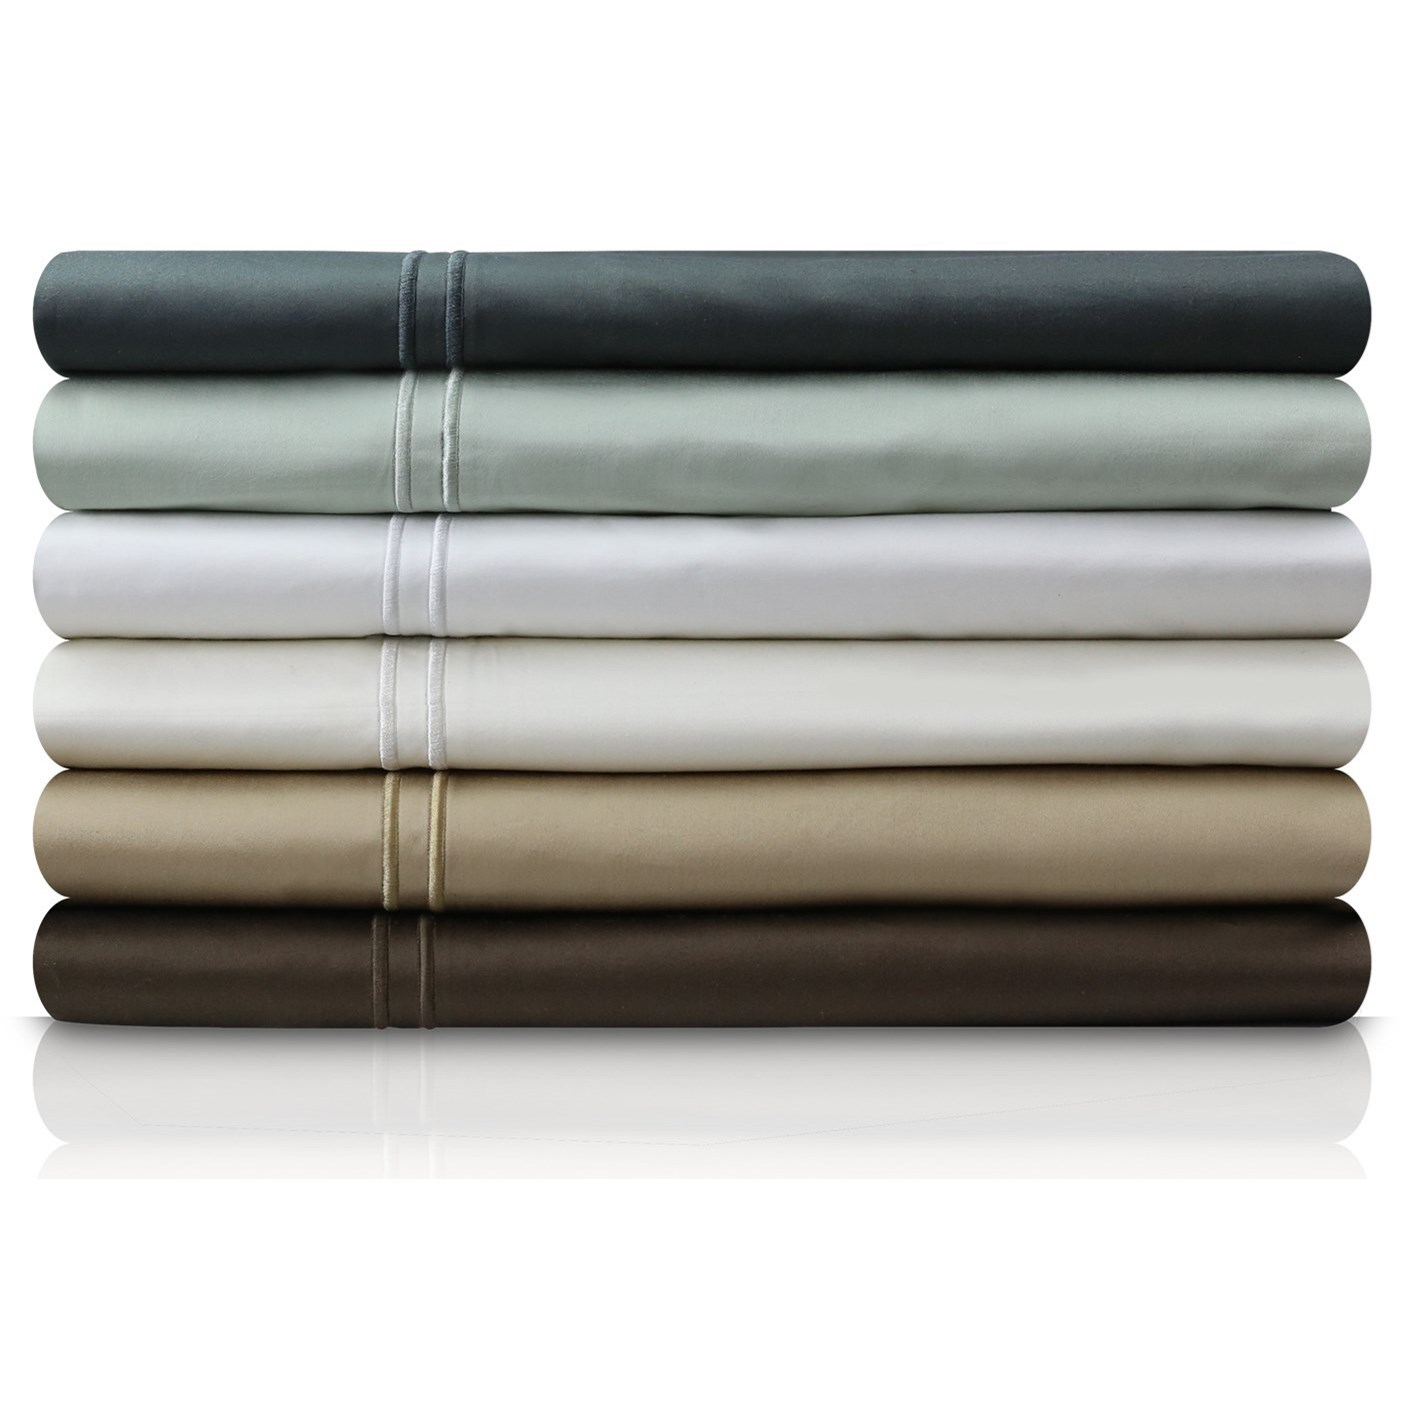 Malouf Egyptian Cotton Queen 600 TC Egyptian Cotton Sheet Set - Item Number: MA06QQKHSS